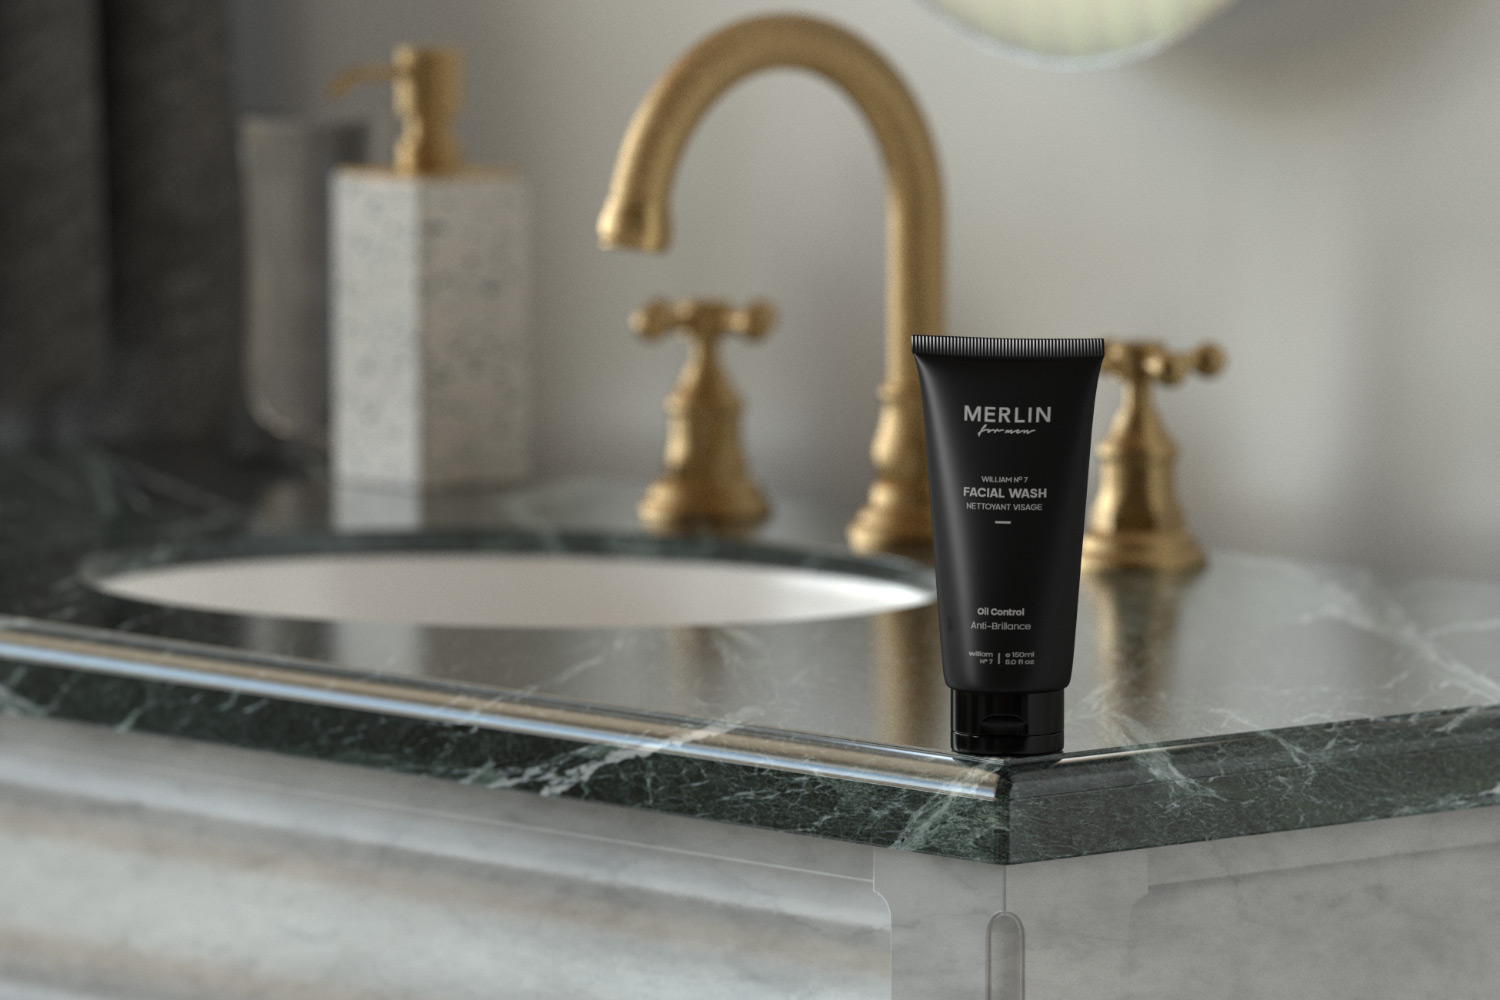 Merlin for men face wash in marble countertop